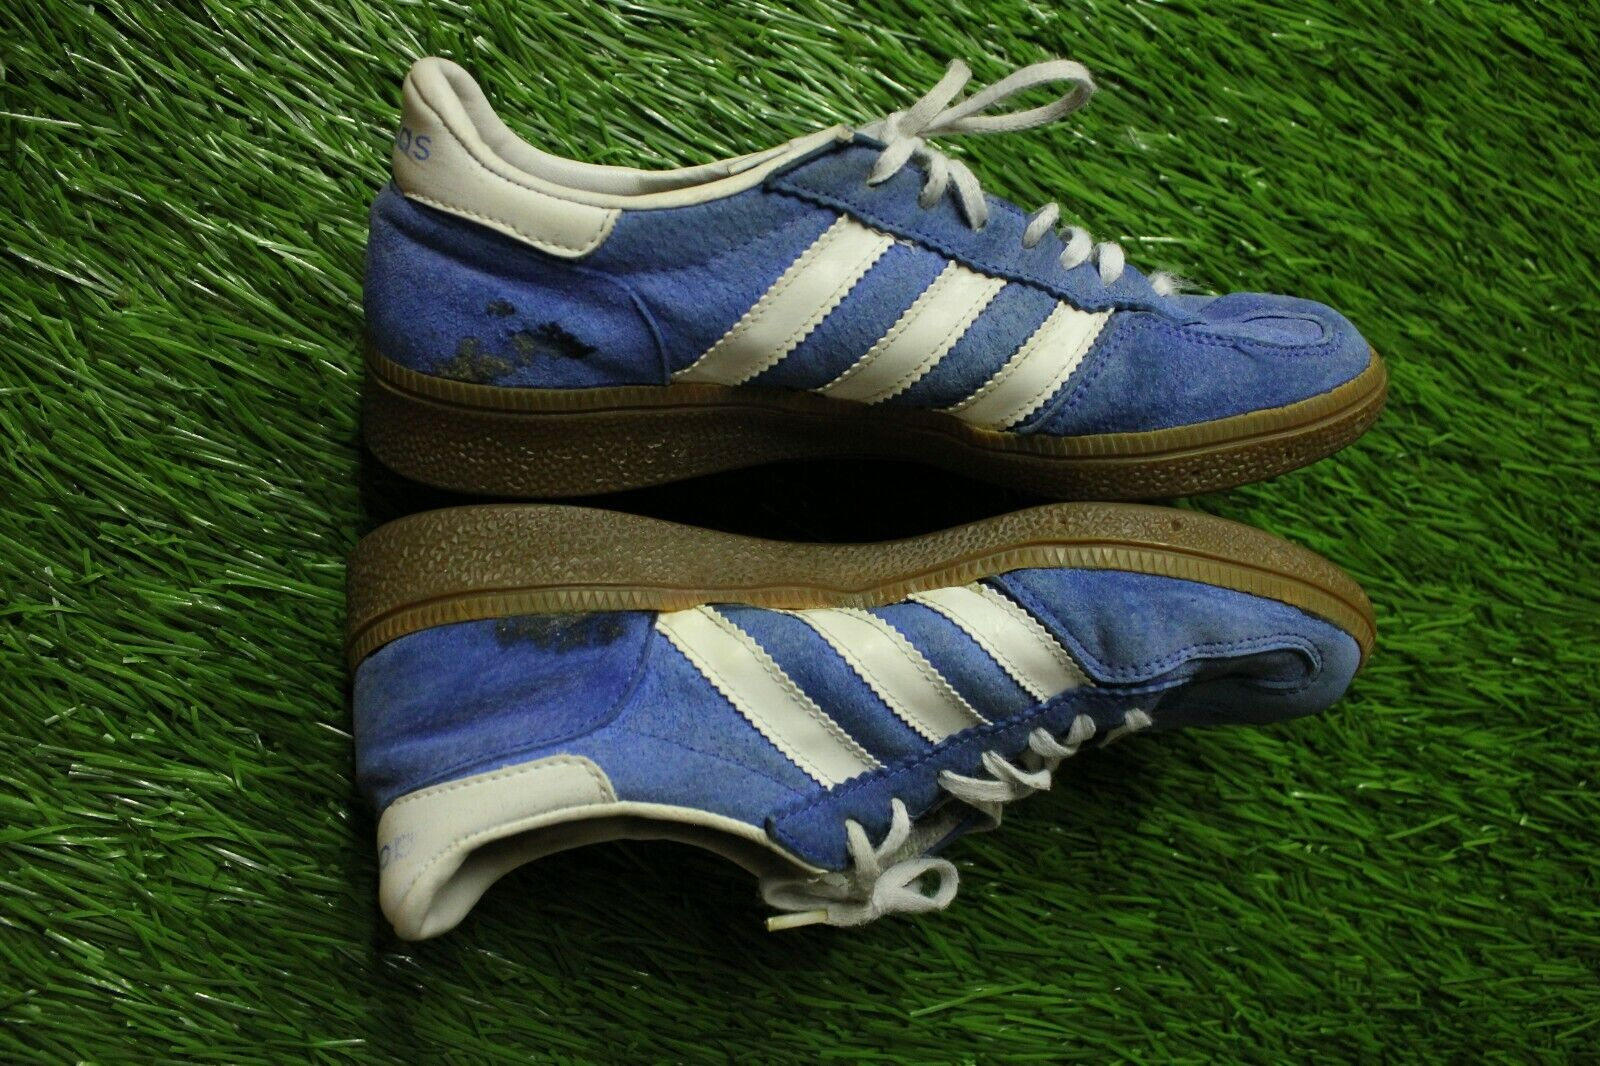 ADIDAS HANDBALL SPECIAL VINTAGE 90'S WOMEN SHOES ORIGINAL SIZE 38 MADE IN POLAND